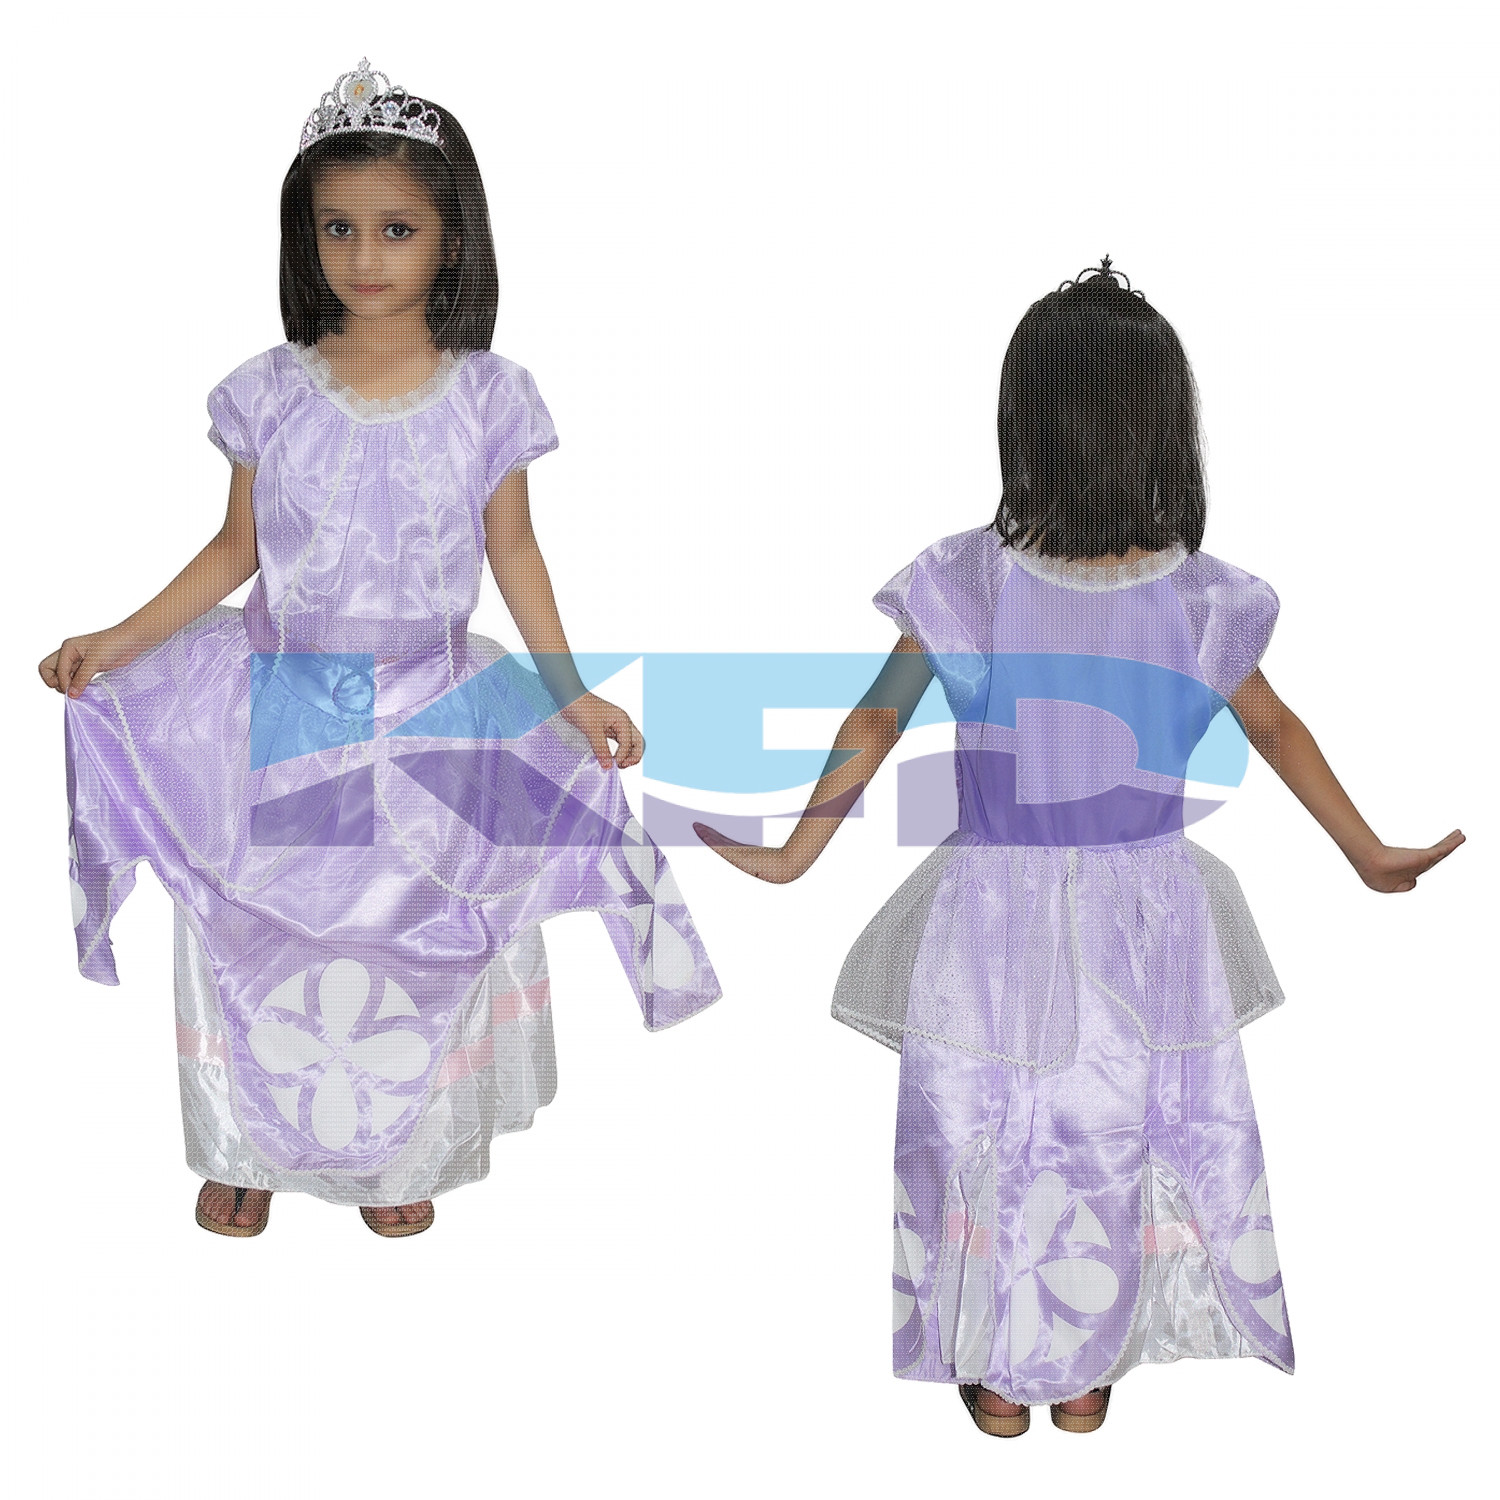 Princes Sofia Cosplays Costume For kids,Halloween Costume/School Annual function/Theme Party/Competition/Stage Shows Dress